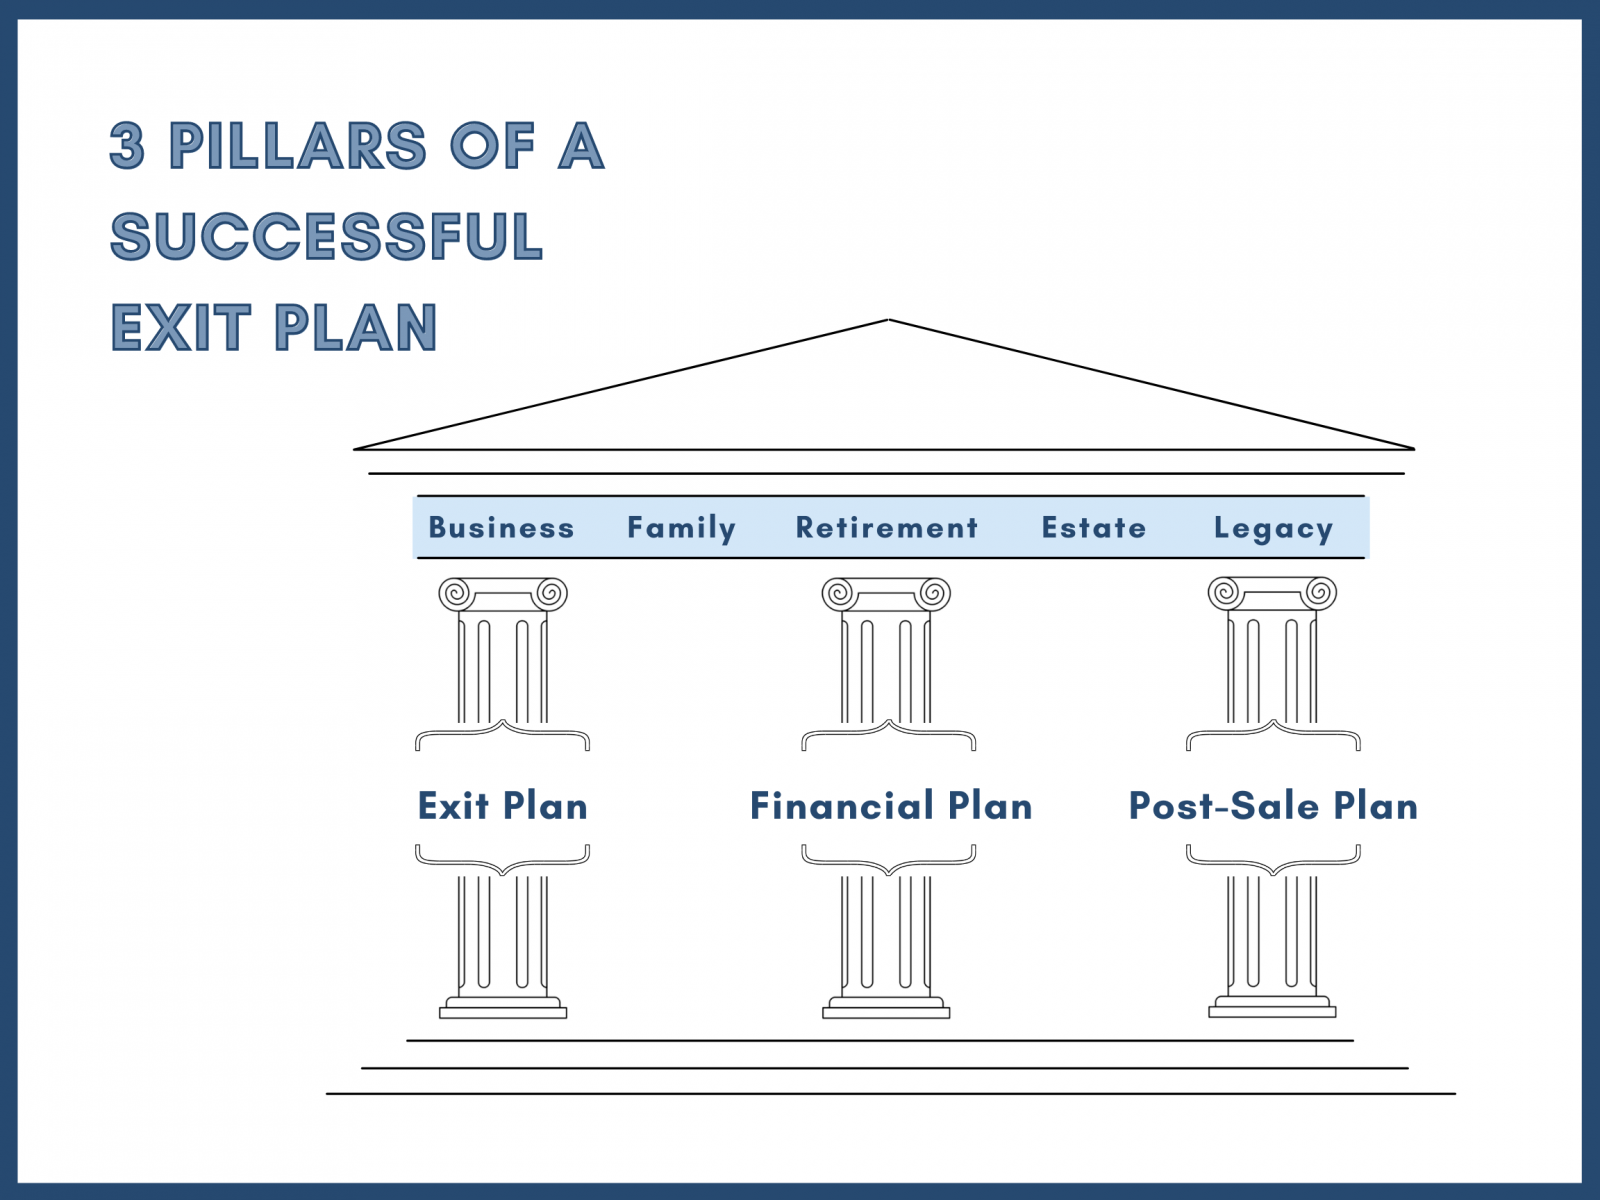 three pillars of a successful exit plan:Exit Plan, Financial Plan, Post-Sale Plan, Business, Family, Retirement, Estate, Legacy